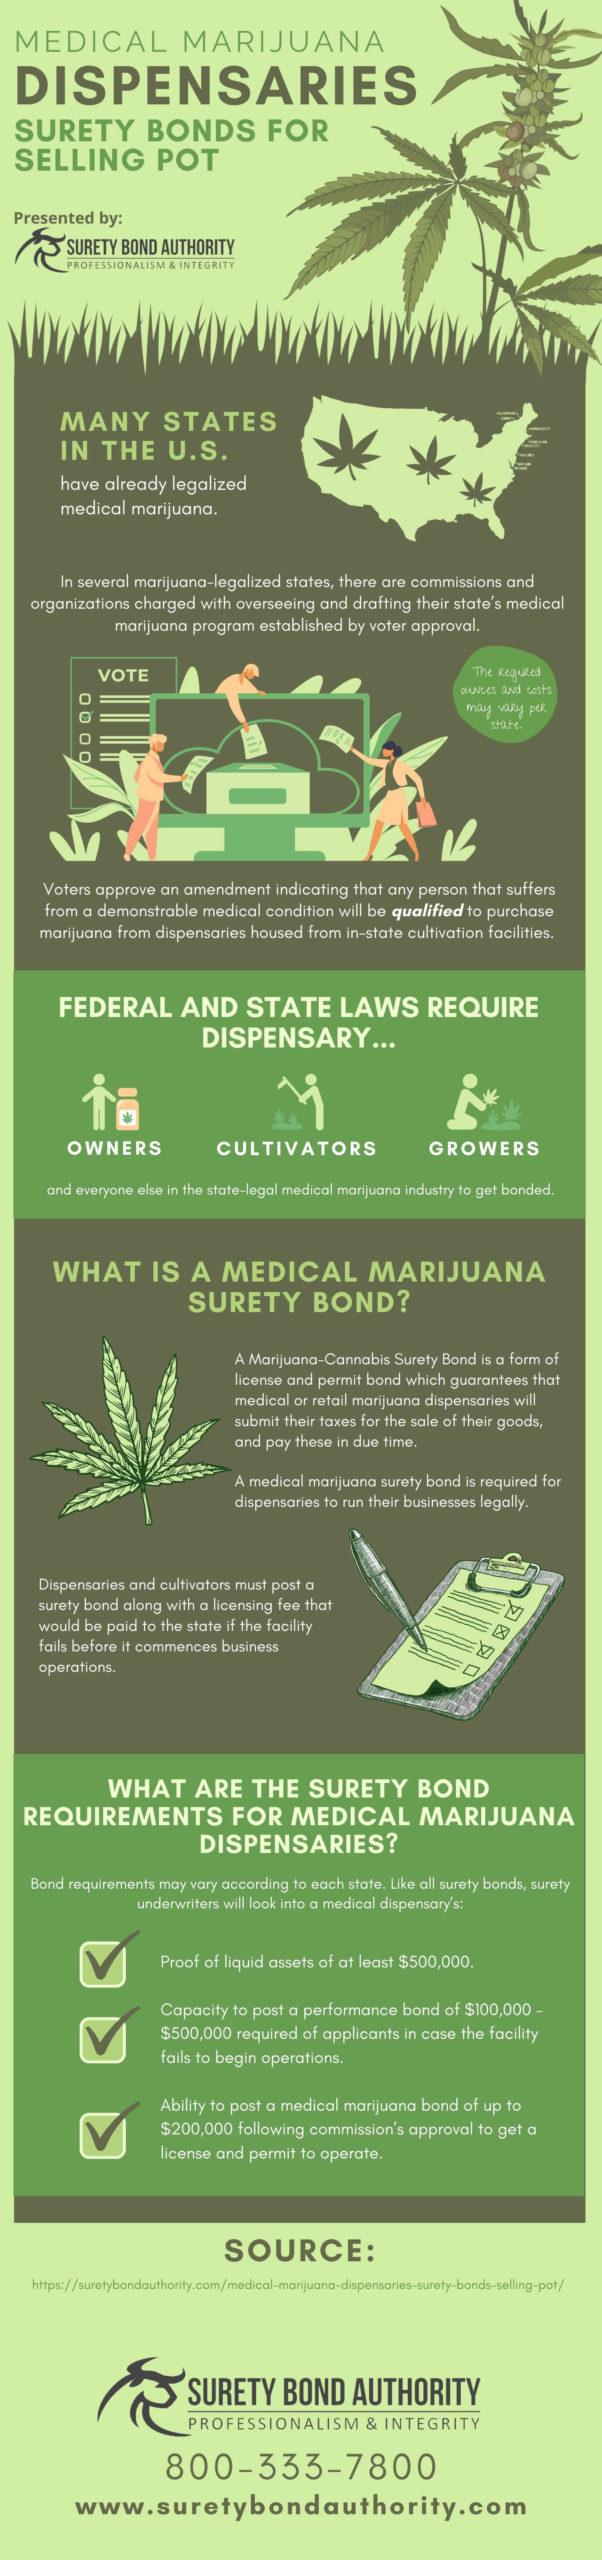 Medical Marijuana Dispensaries Infographic